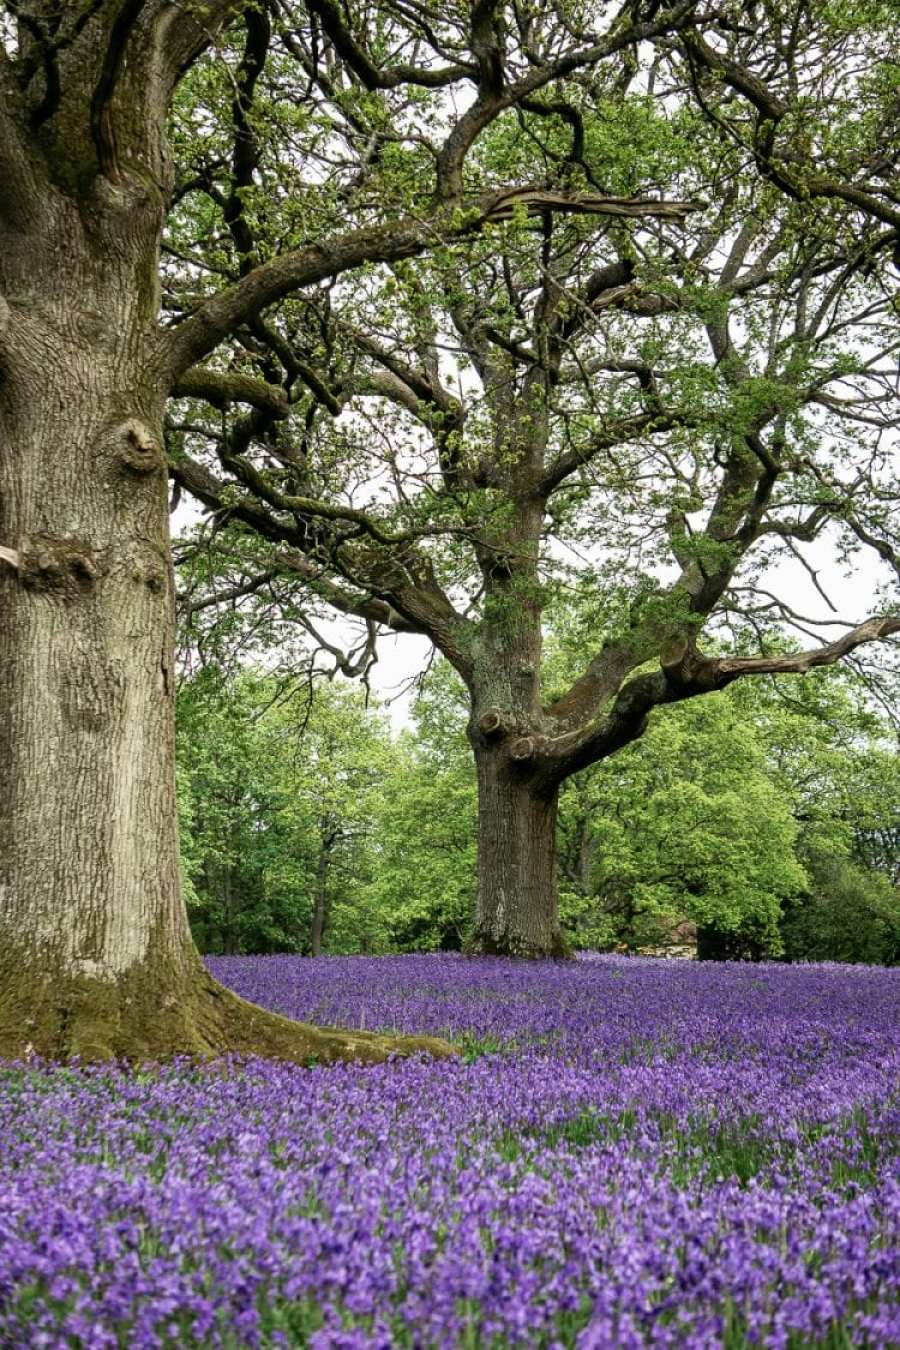 Big Bluebell Watch bluebells under oaks